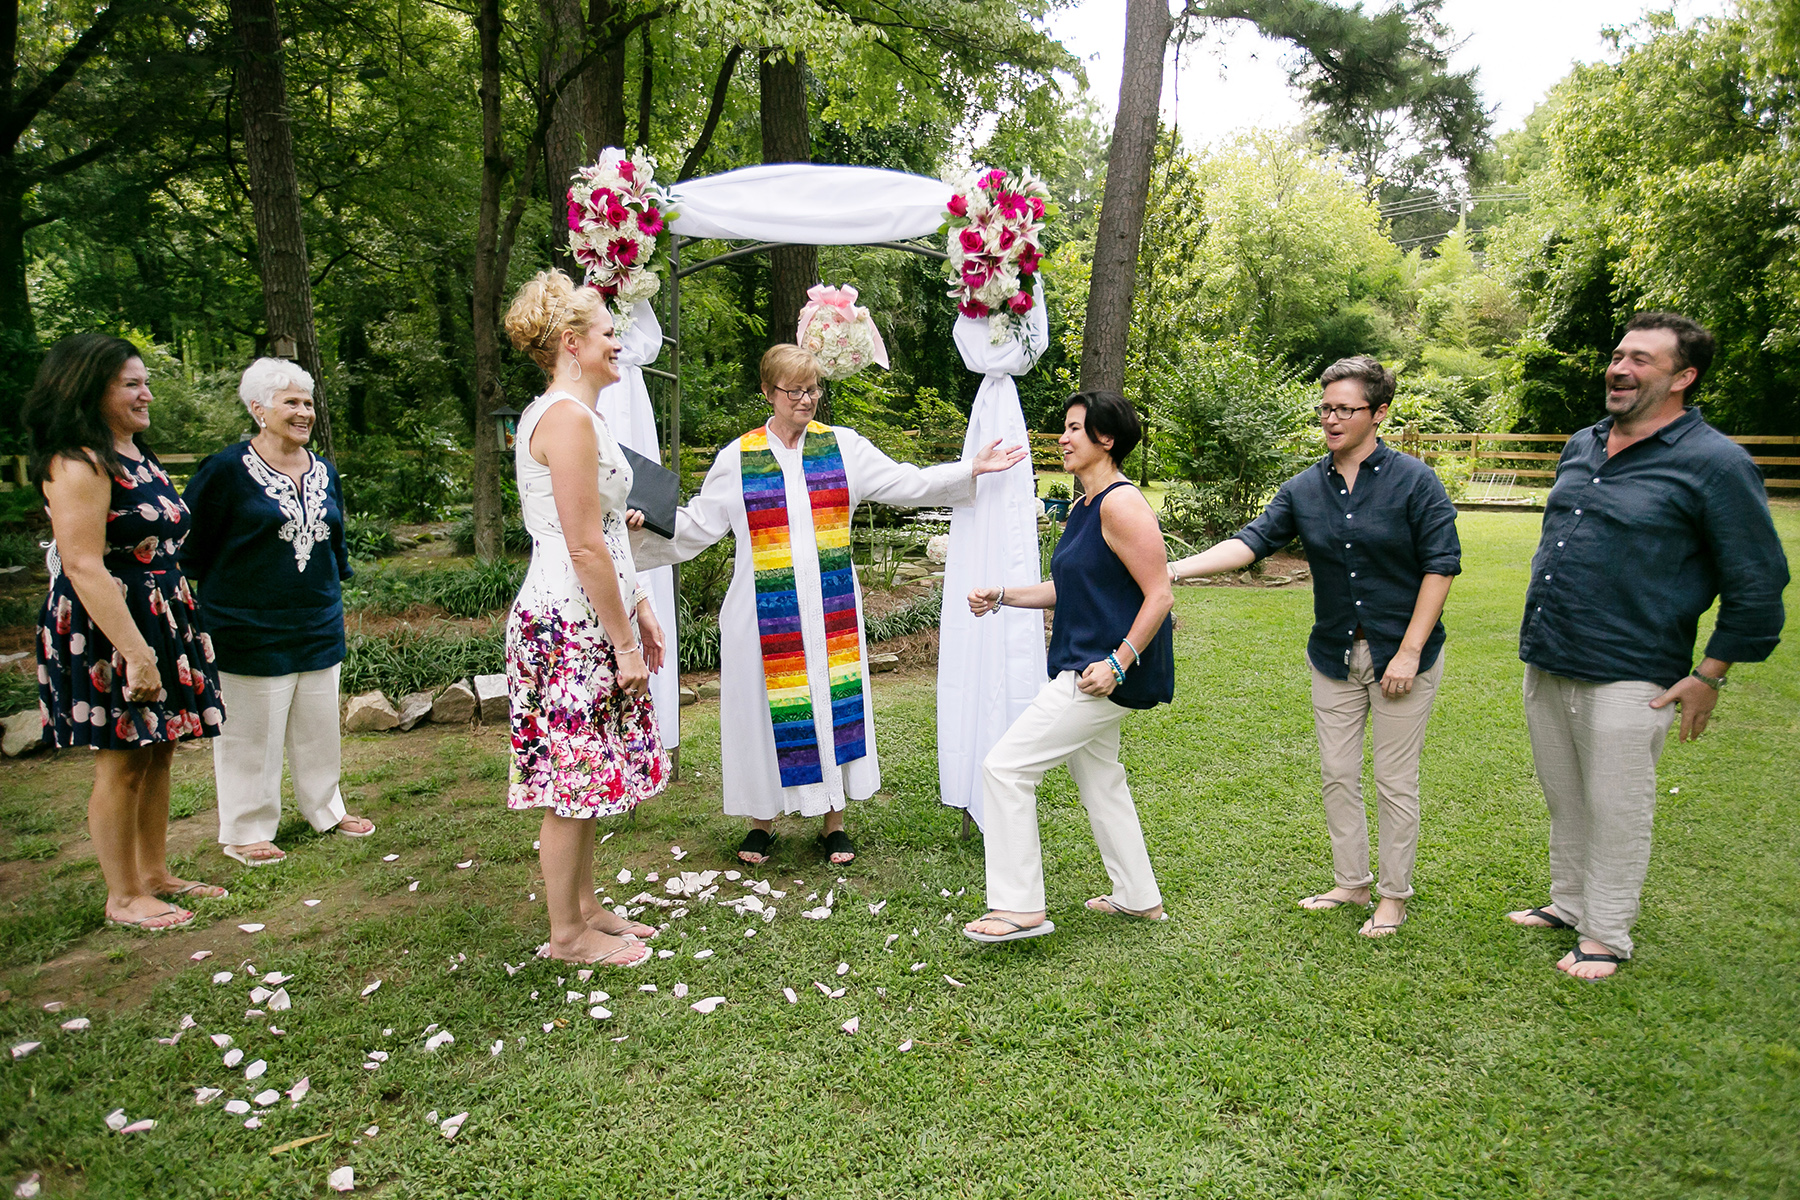 Intimate Backyard Wedding Photography | The couple greet each other before the wedding